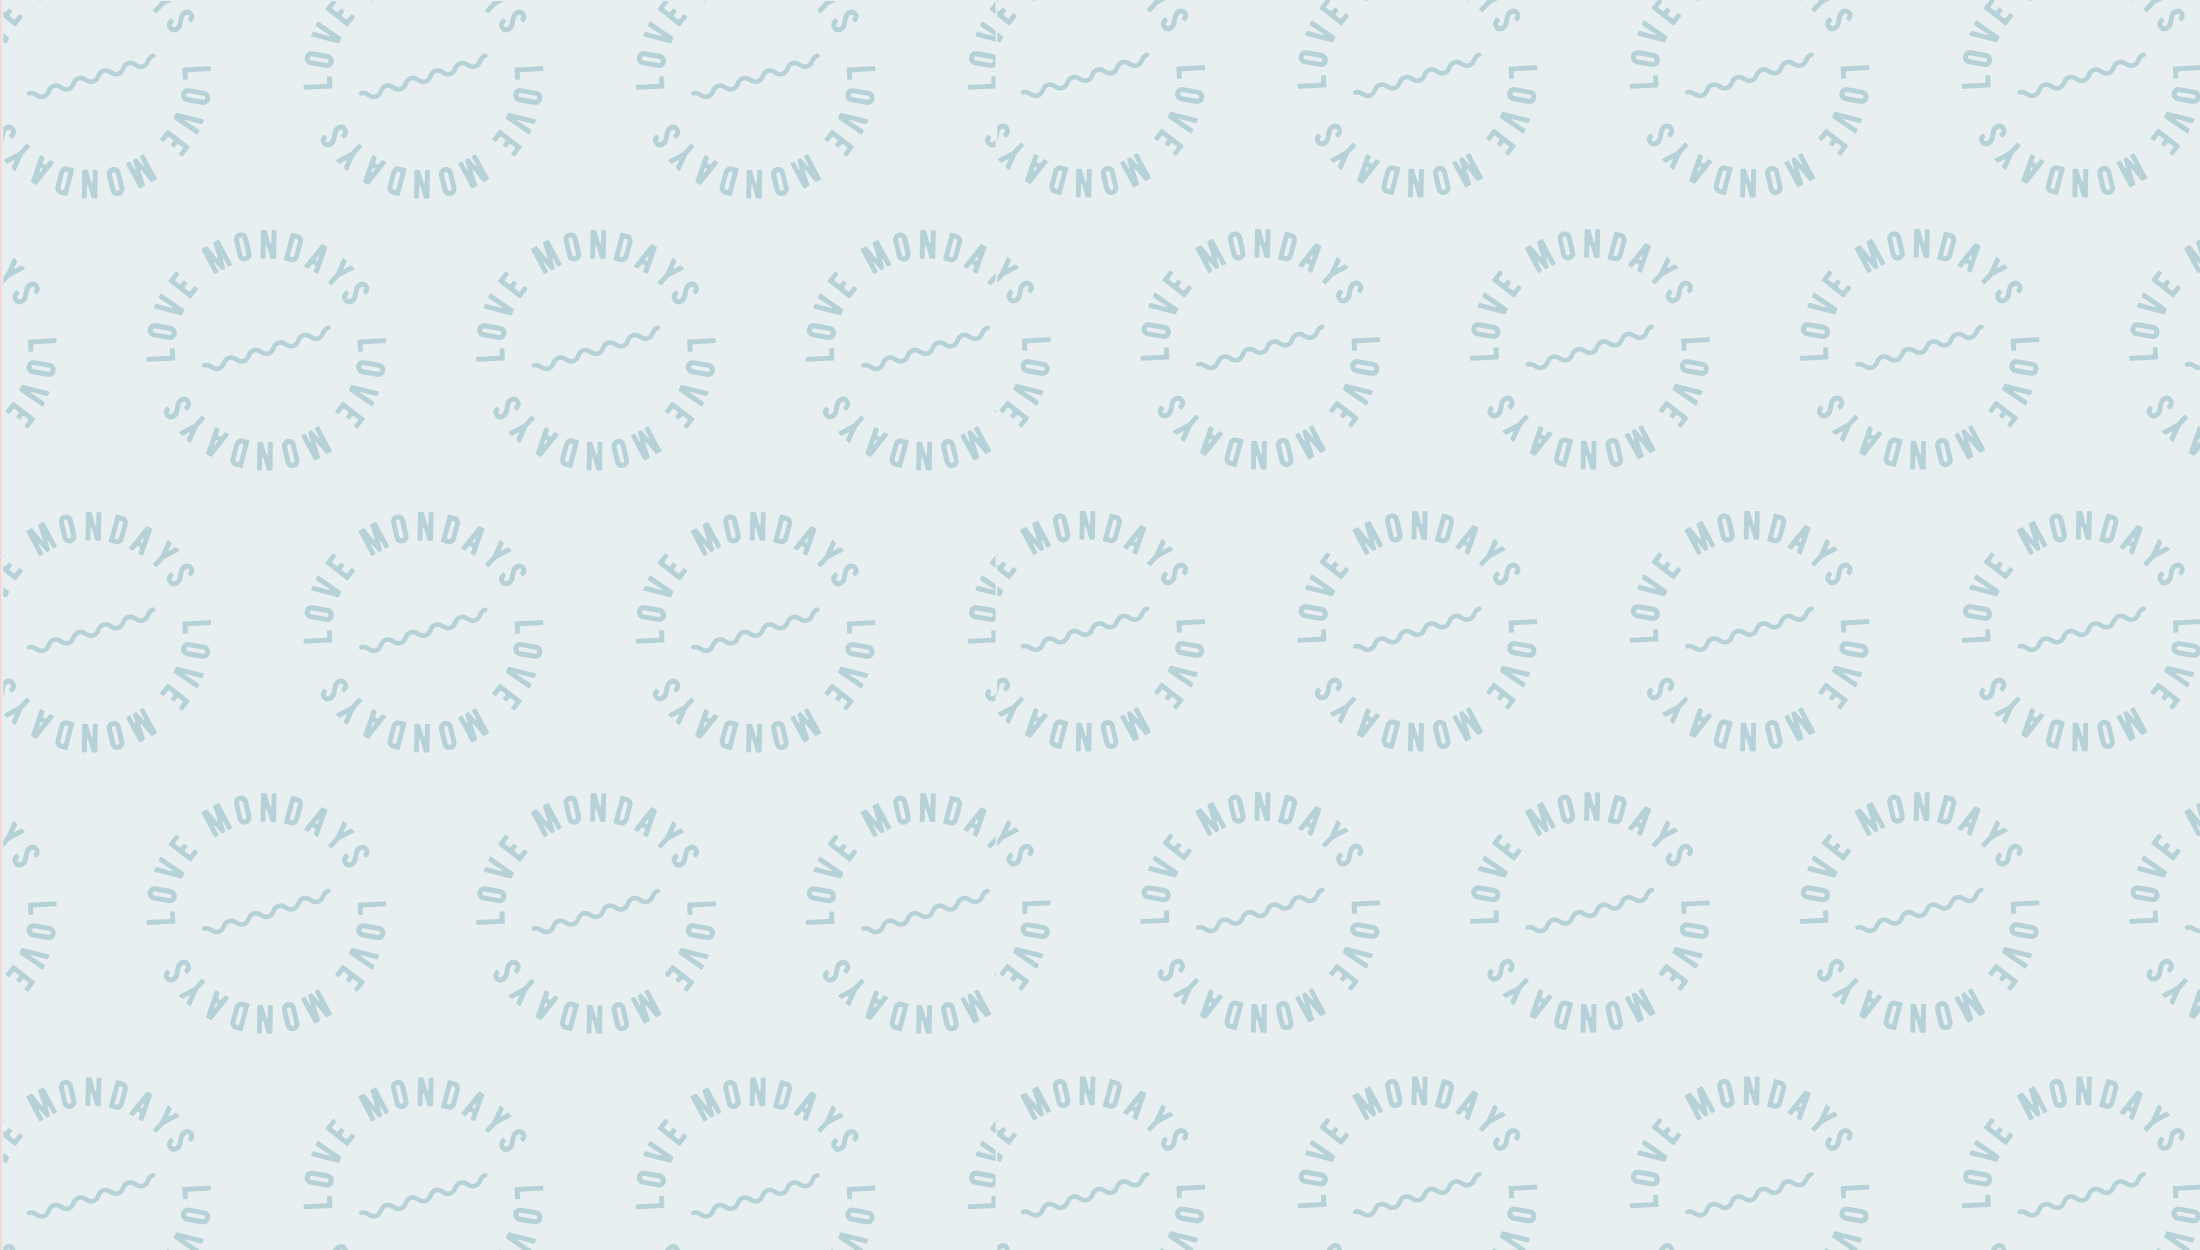 'Love Mondays' repeat pattern for Monday Brunch, a skincare line that aims to bring high-quality products and positivity to it's customers, no matter what day of the week - designed by Wiltshire-based graphic designer, Kaye Huett